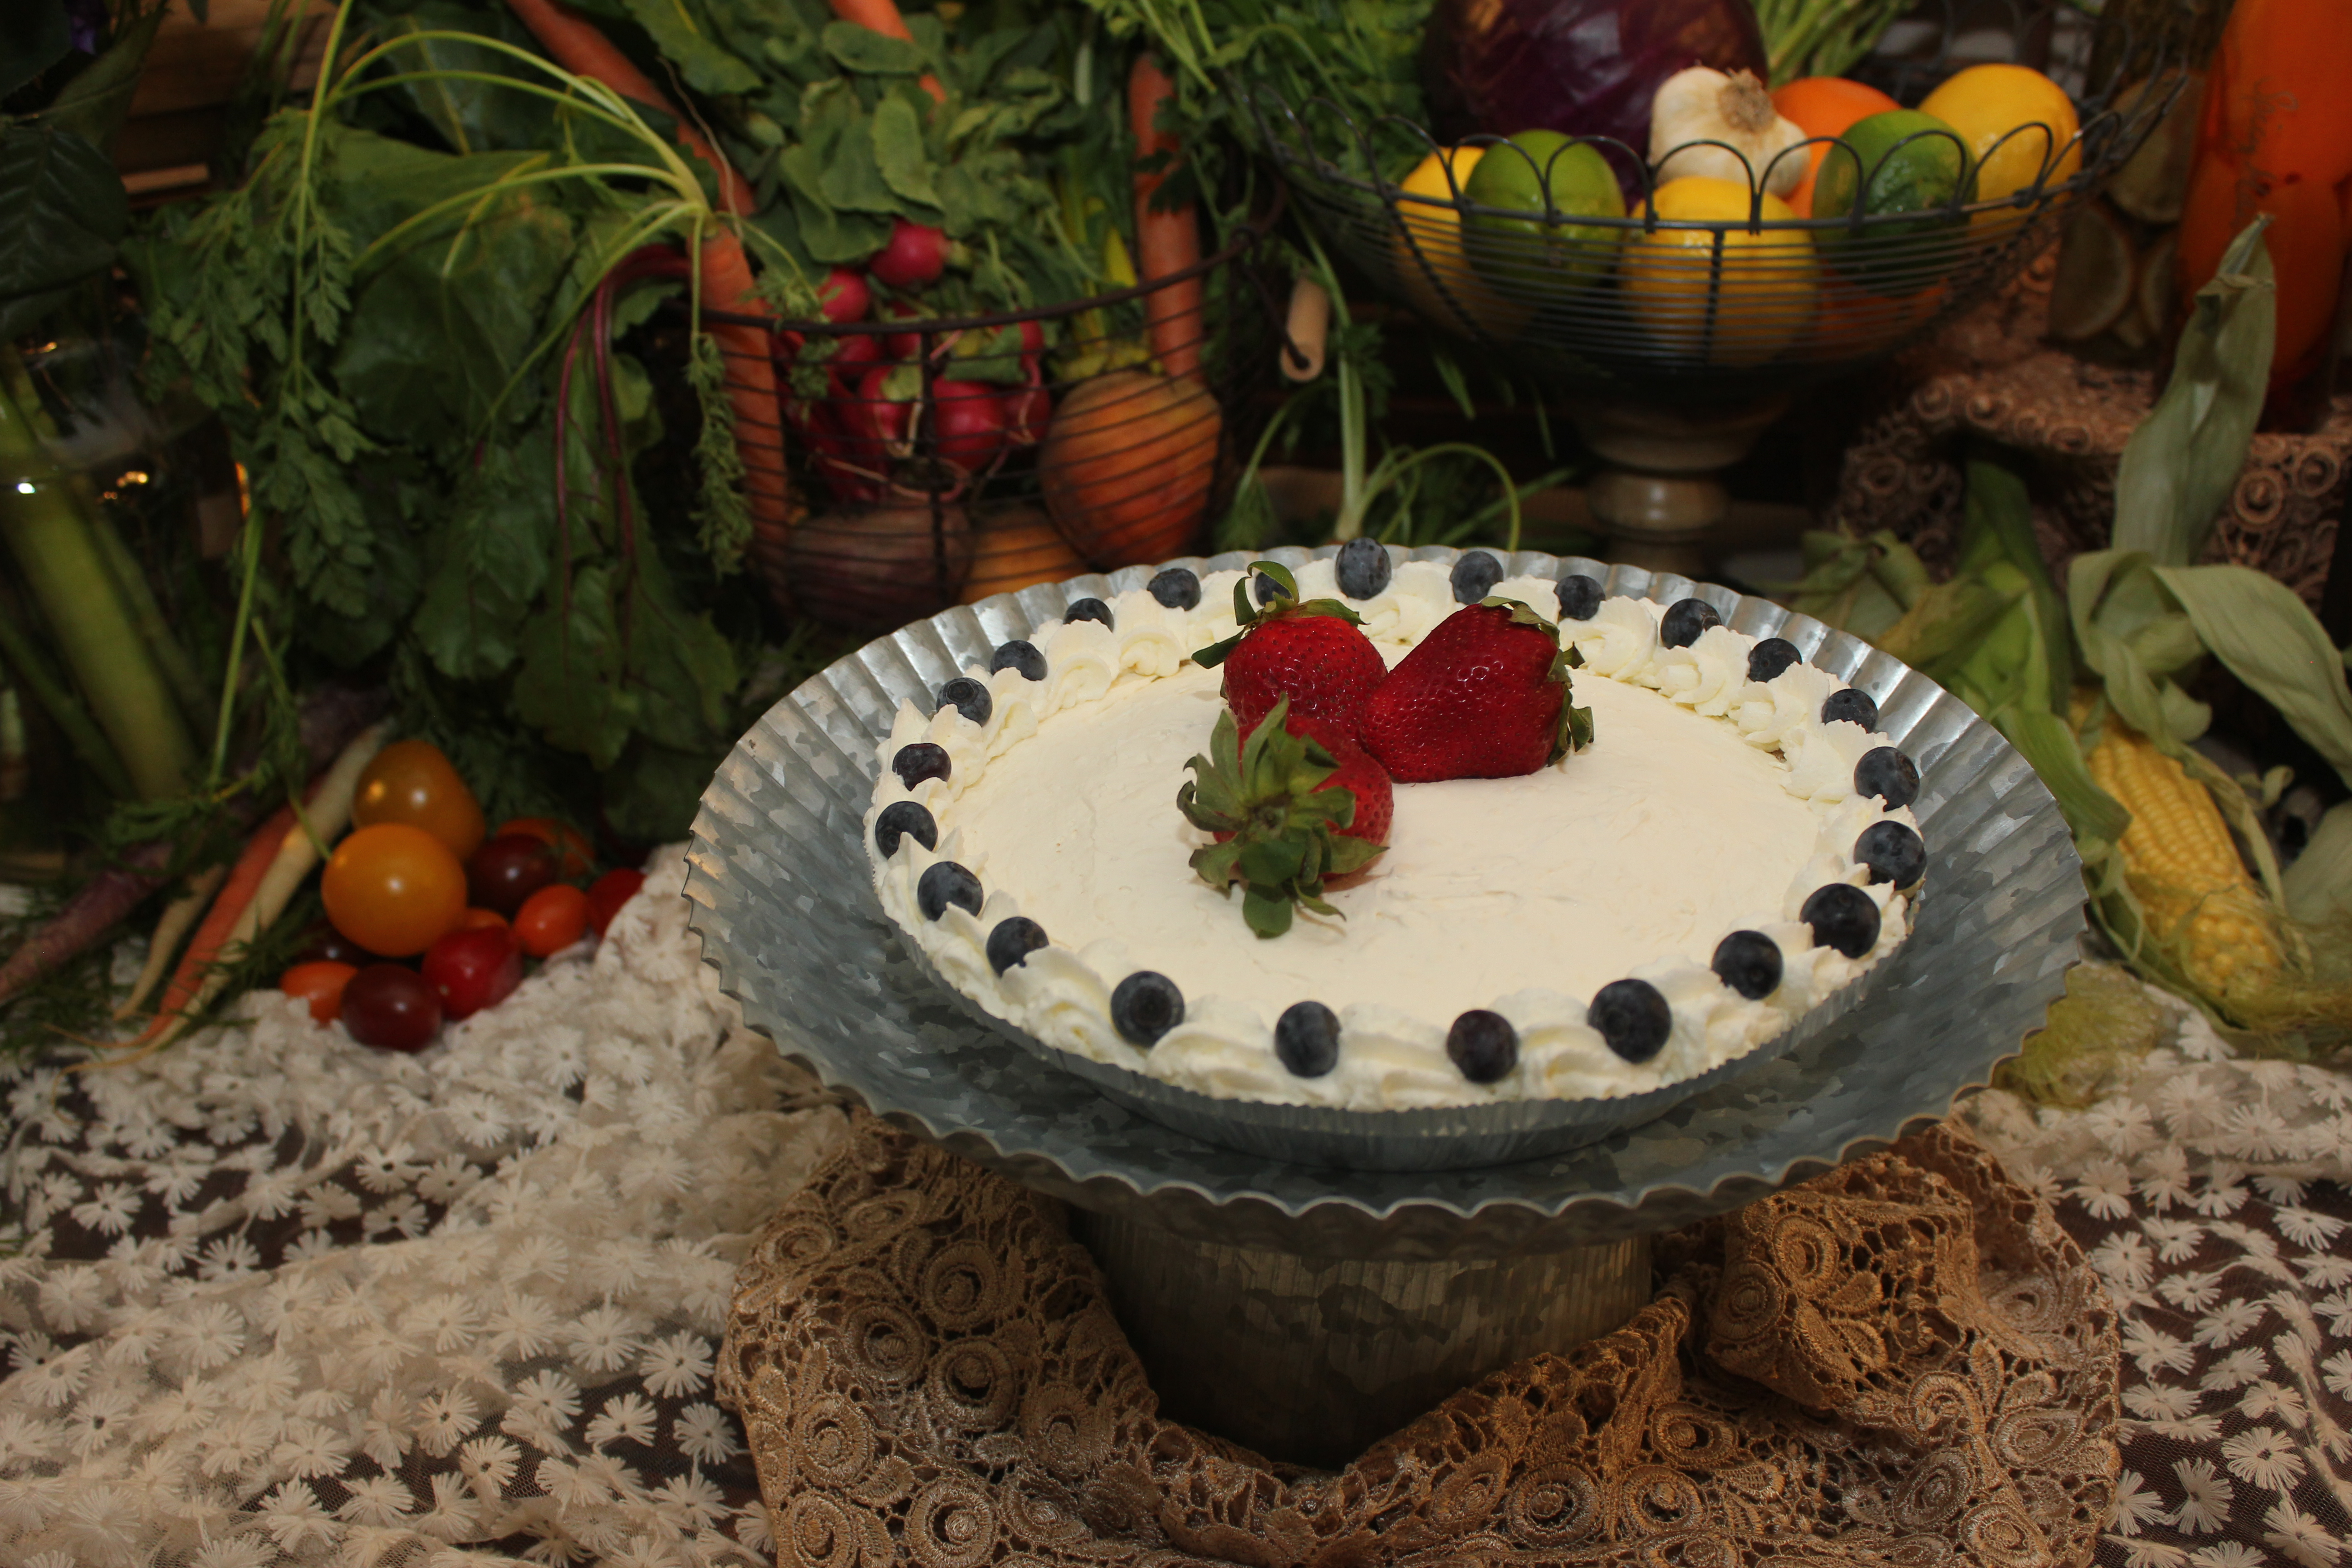 Plain ol cheesecake can be dressed up with fresh fruits or even made into a turtle cheesecake! Get creative with this cheesecake and share with friends and family!